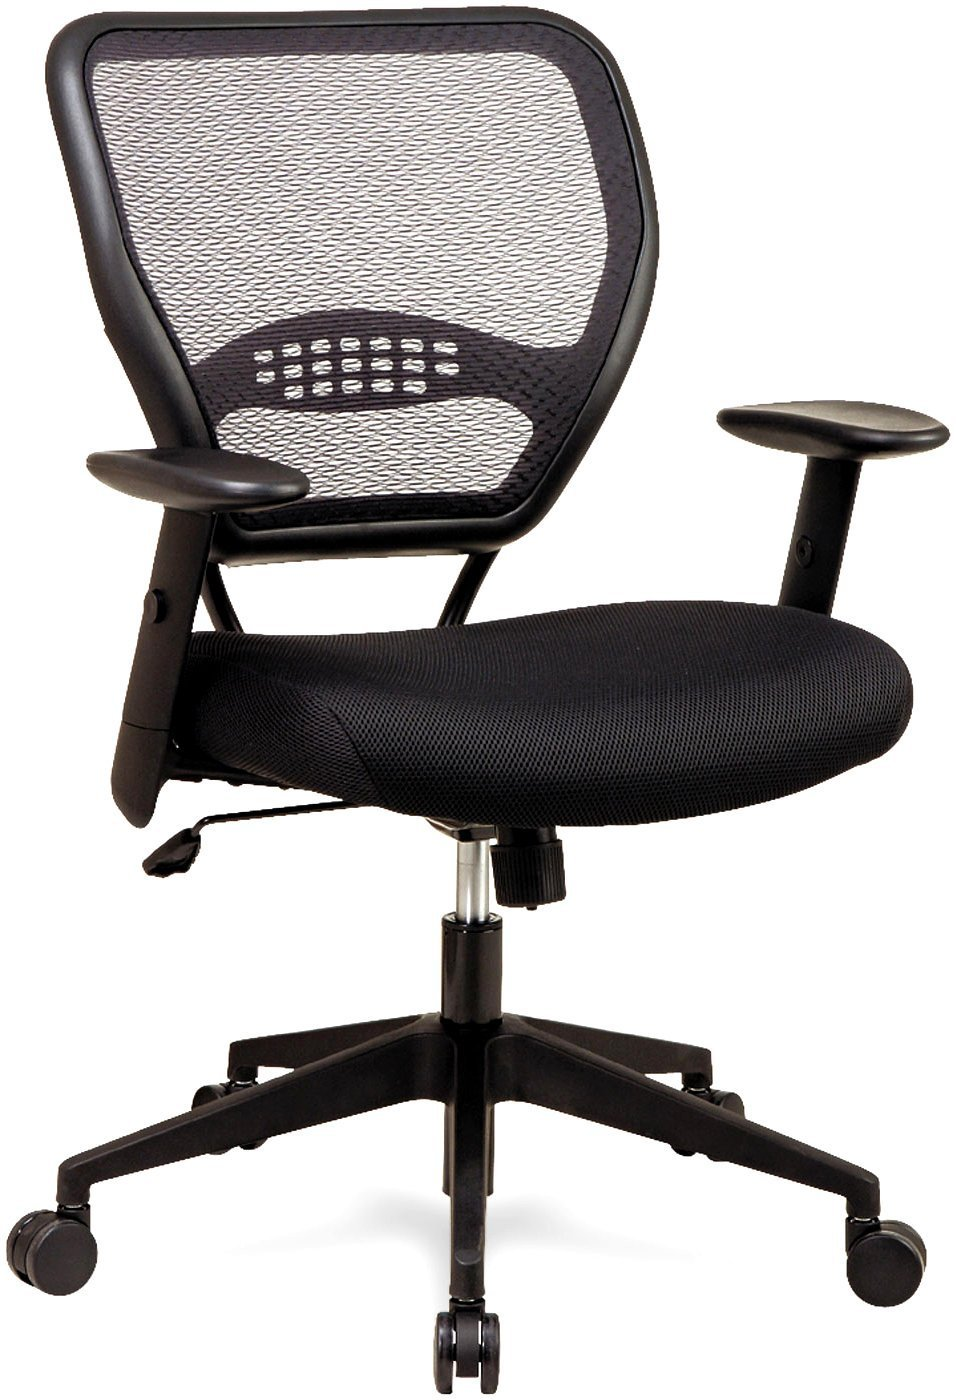 office chair exceeding expectations office chairs for heavy